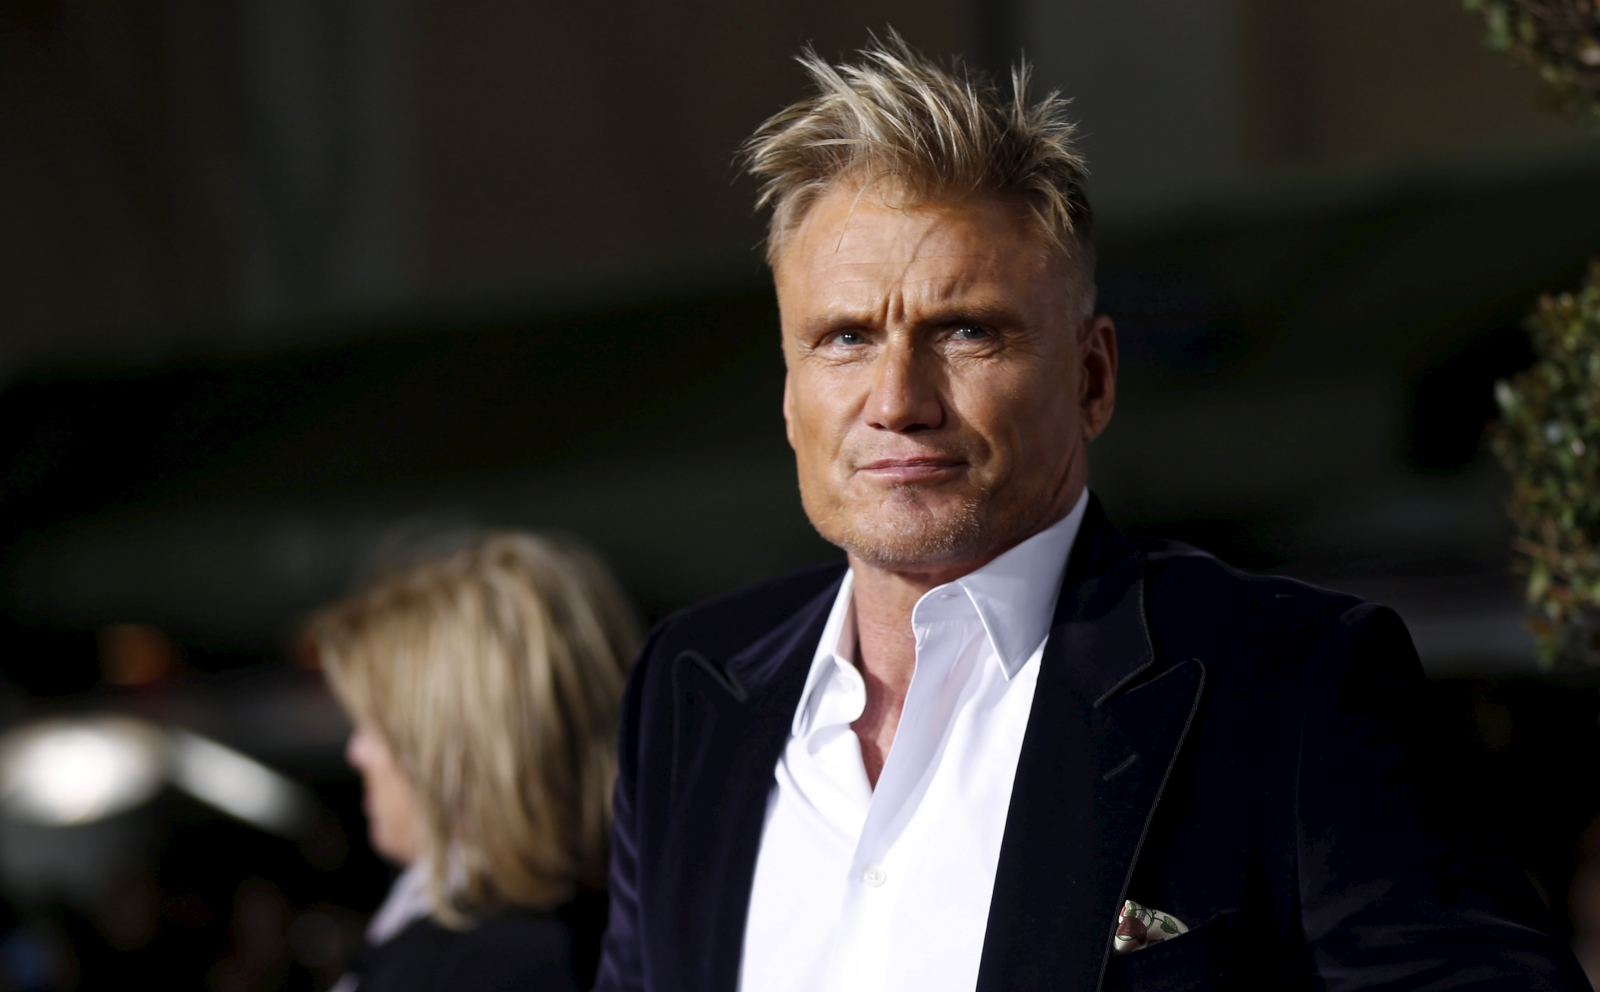 Aquaman adds Dolph Lundgren as movie's third villain alongside Ocean Master and Black Manta